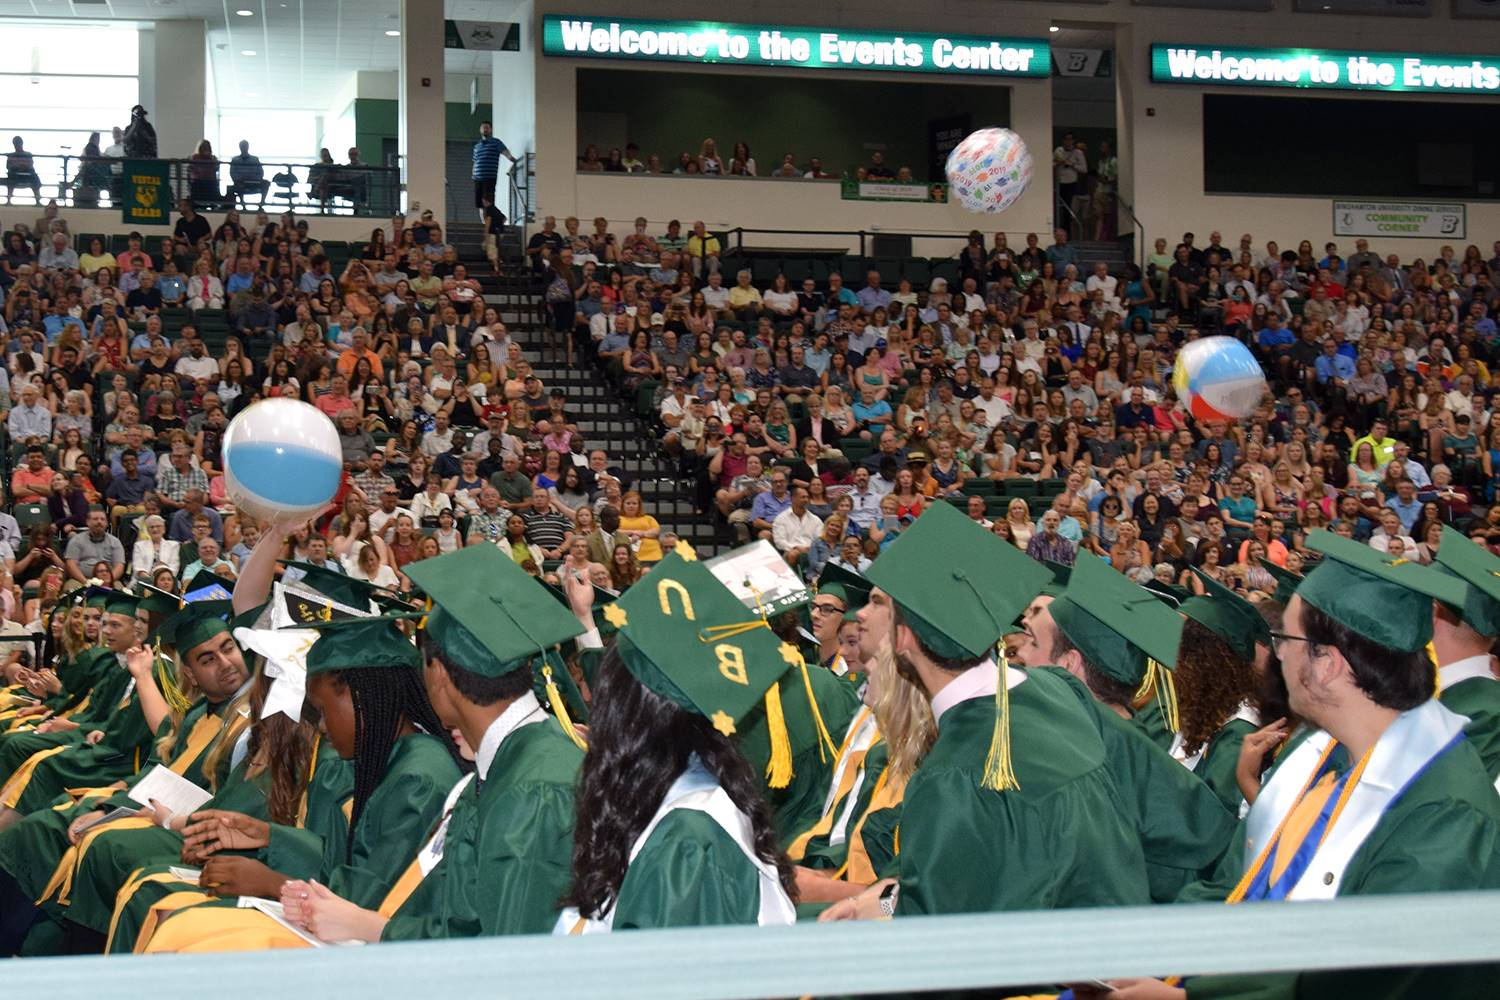 Beach balls are batted around during a break in the graduation ceremony.